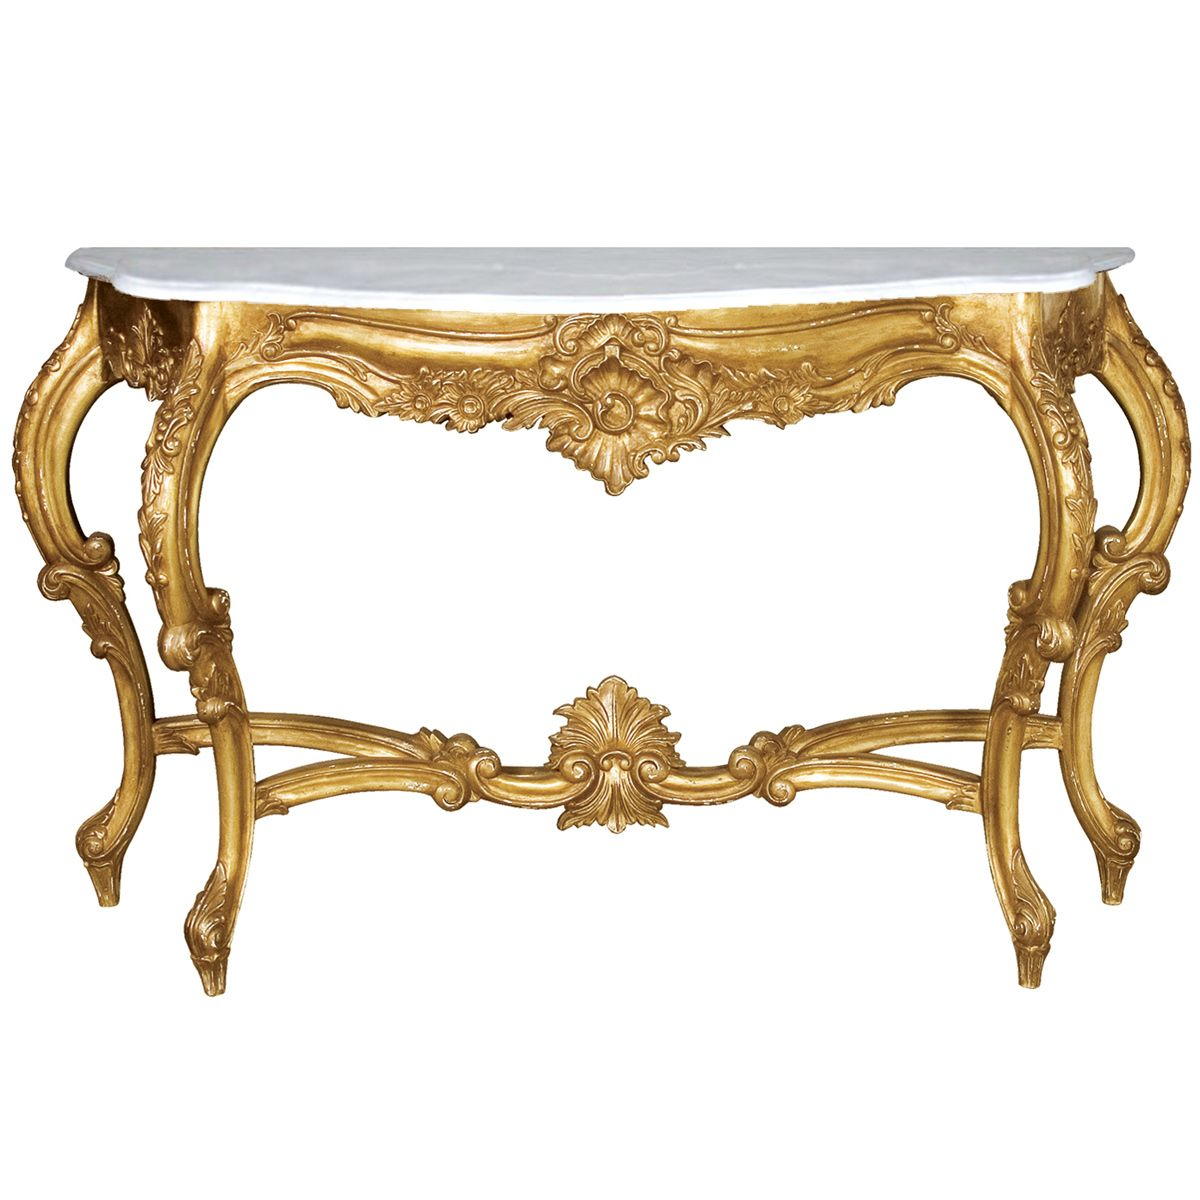 Antique Furniture Solid Mahogany French Versailles Style Gilt Marble Top Carved Console Hall Table